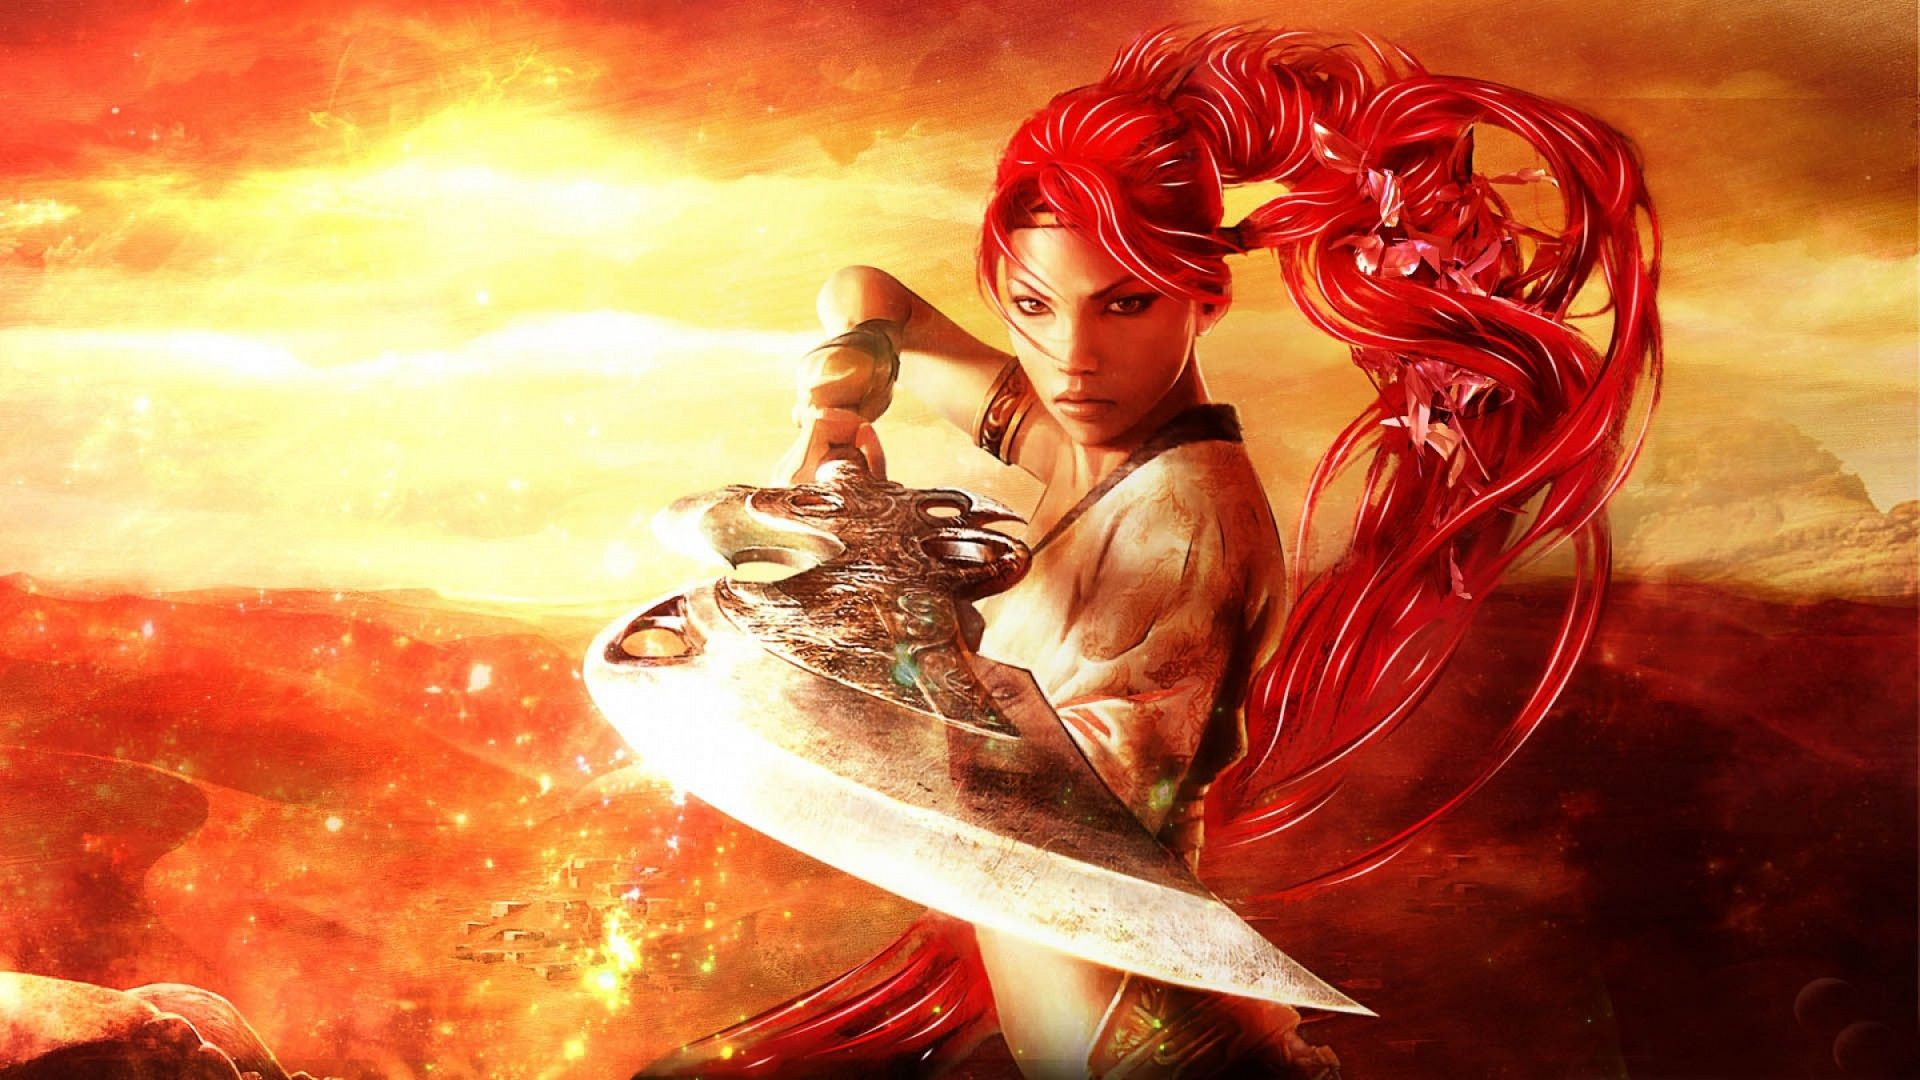 Pin by Brandan Flynn on Maidens Warrior Women Heavenly sword 1920x1080